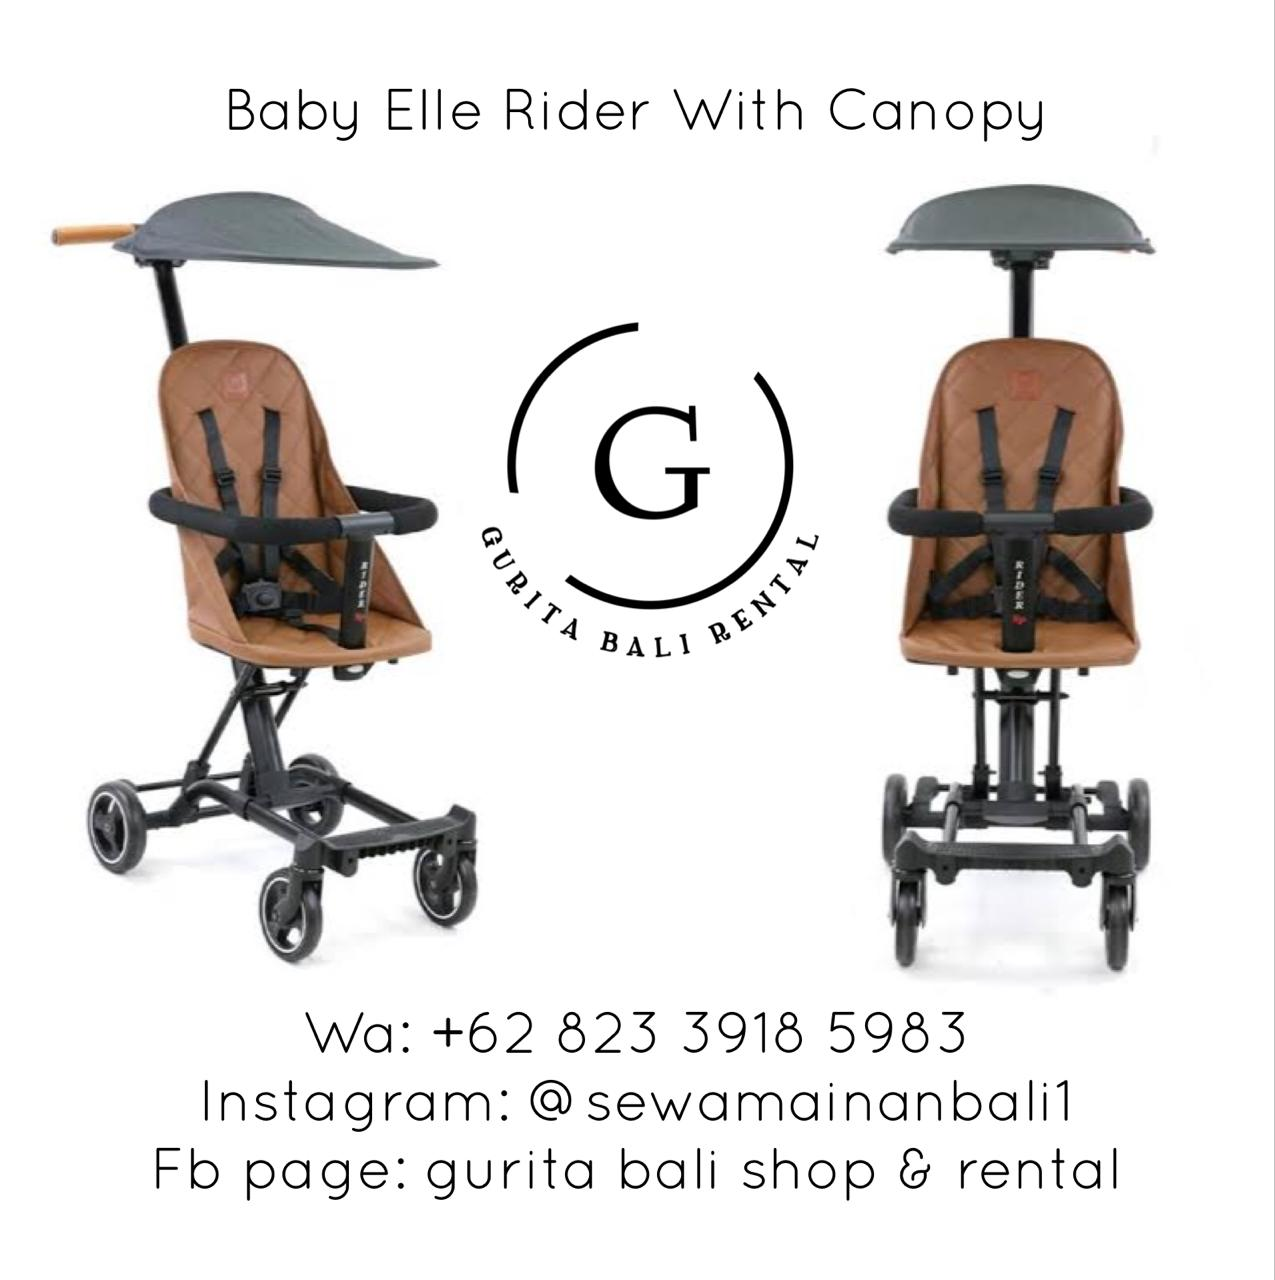 BABYELLE RIDER WITH CANOPY 2